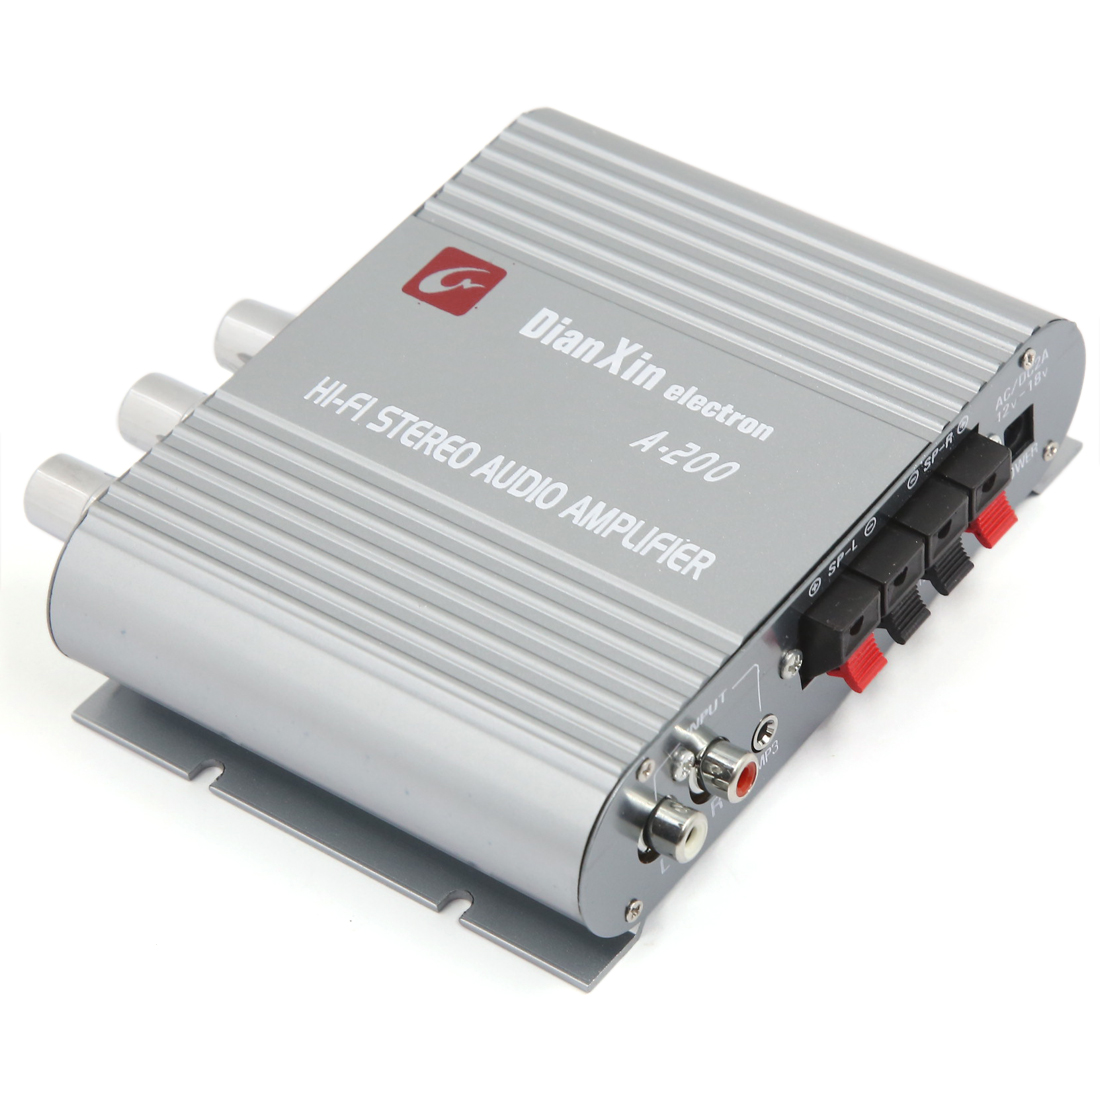 Universal 85dB Mini Hi-fi 200W Stereo Audio Power Amplifier Gray for Car